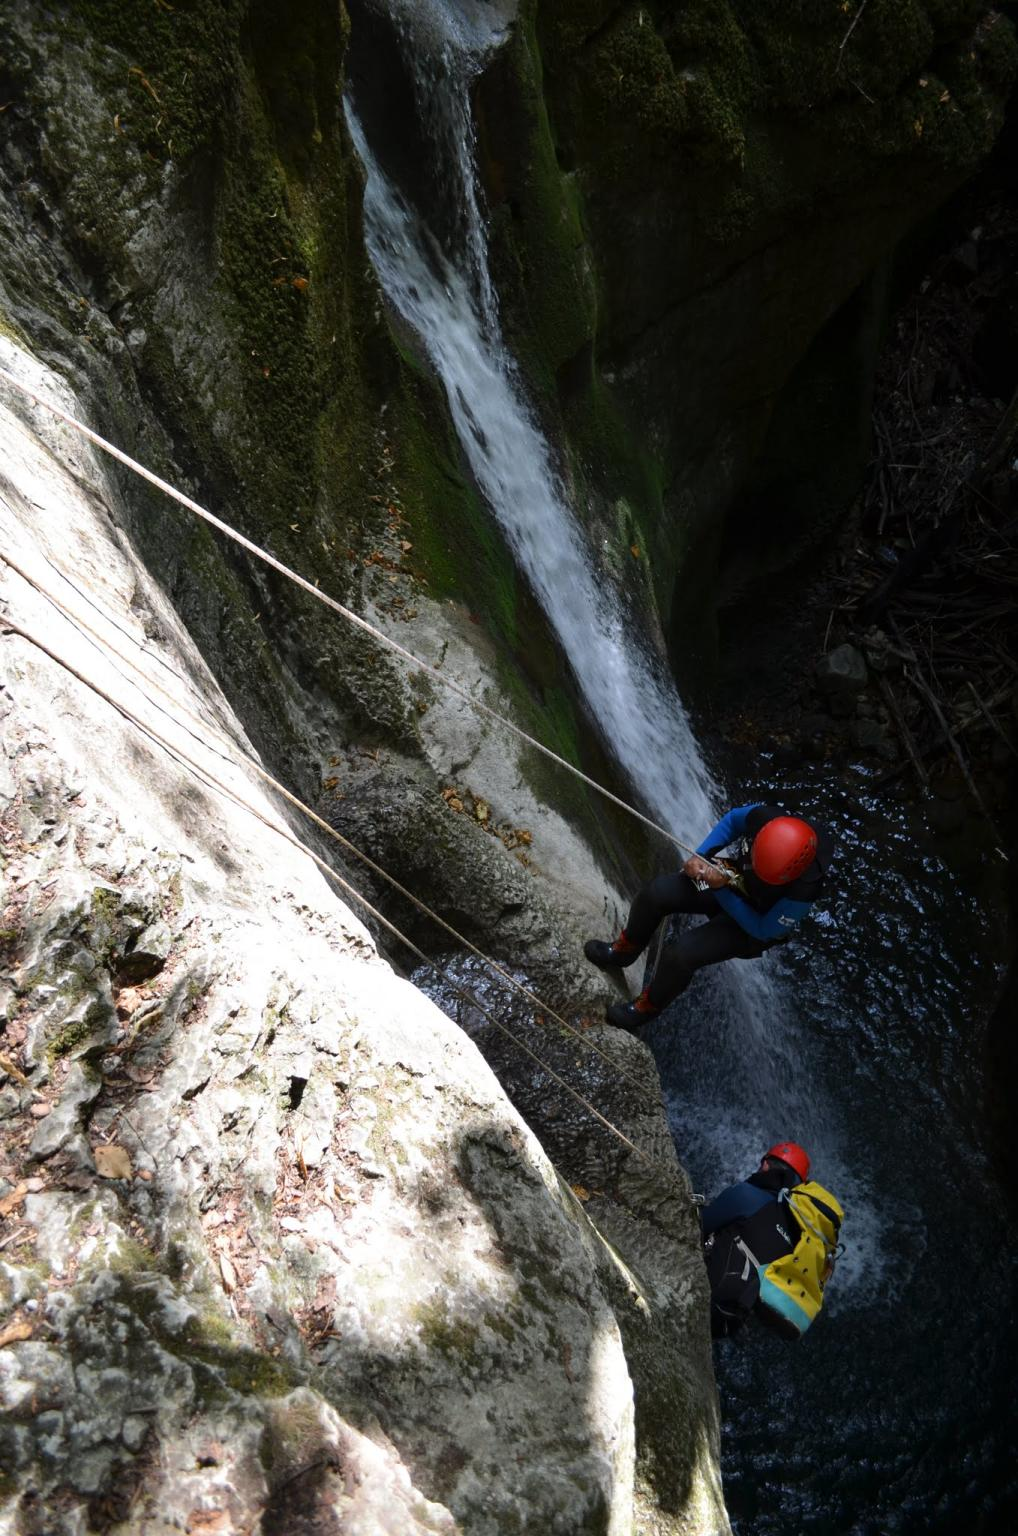 Abseiling in the Furon canyon , canyon close to Lyon and Grenoble